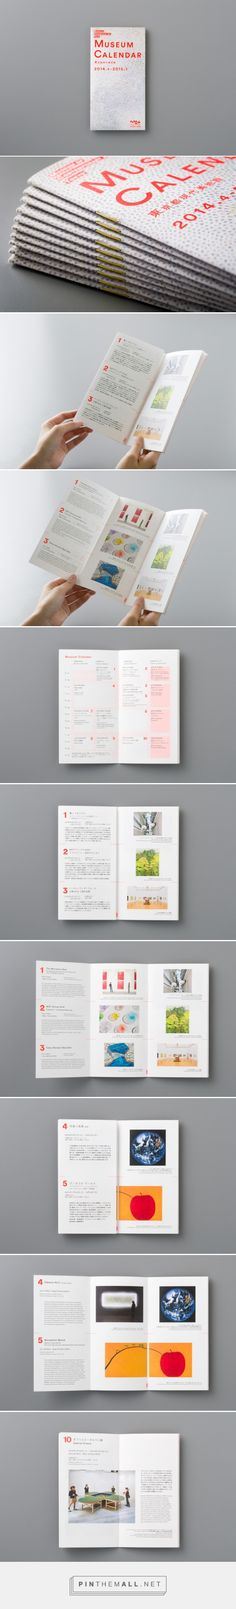 Museum of Contemporary Art Tokyo | Museum Calendar by UMA / design farm